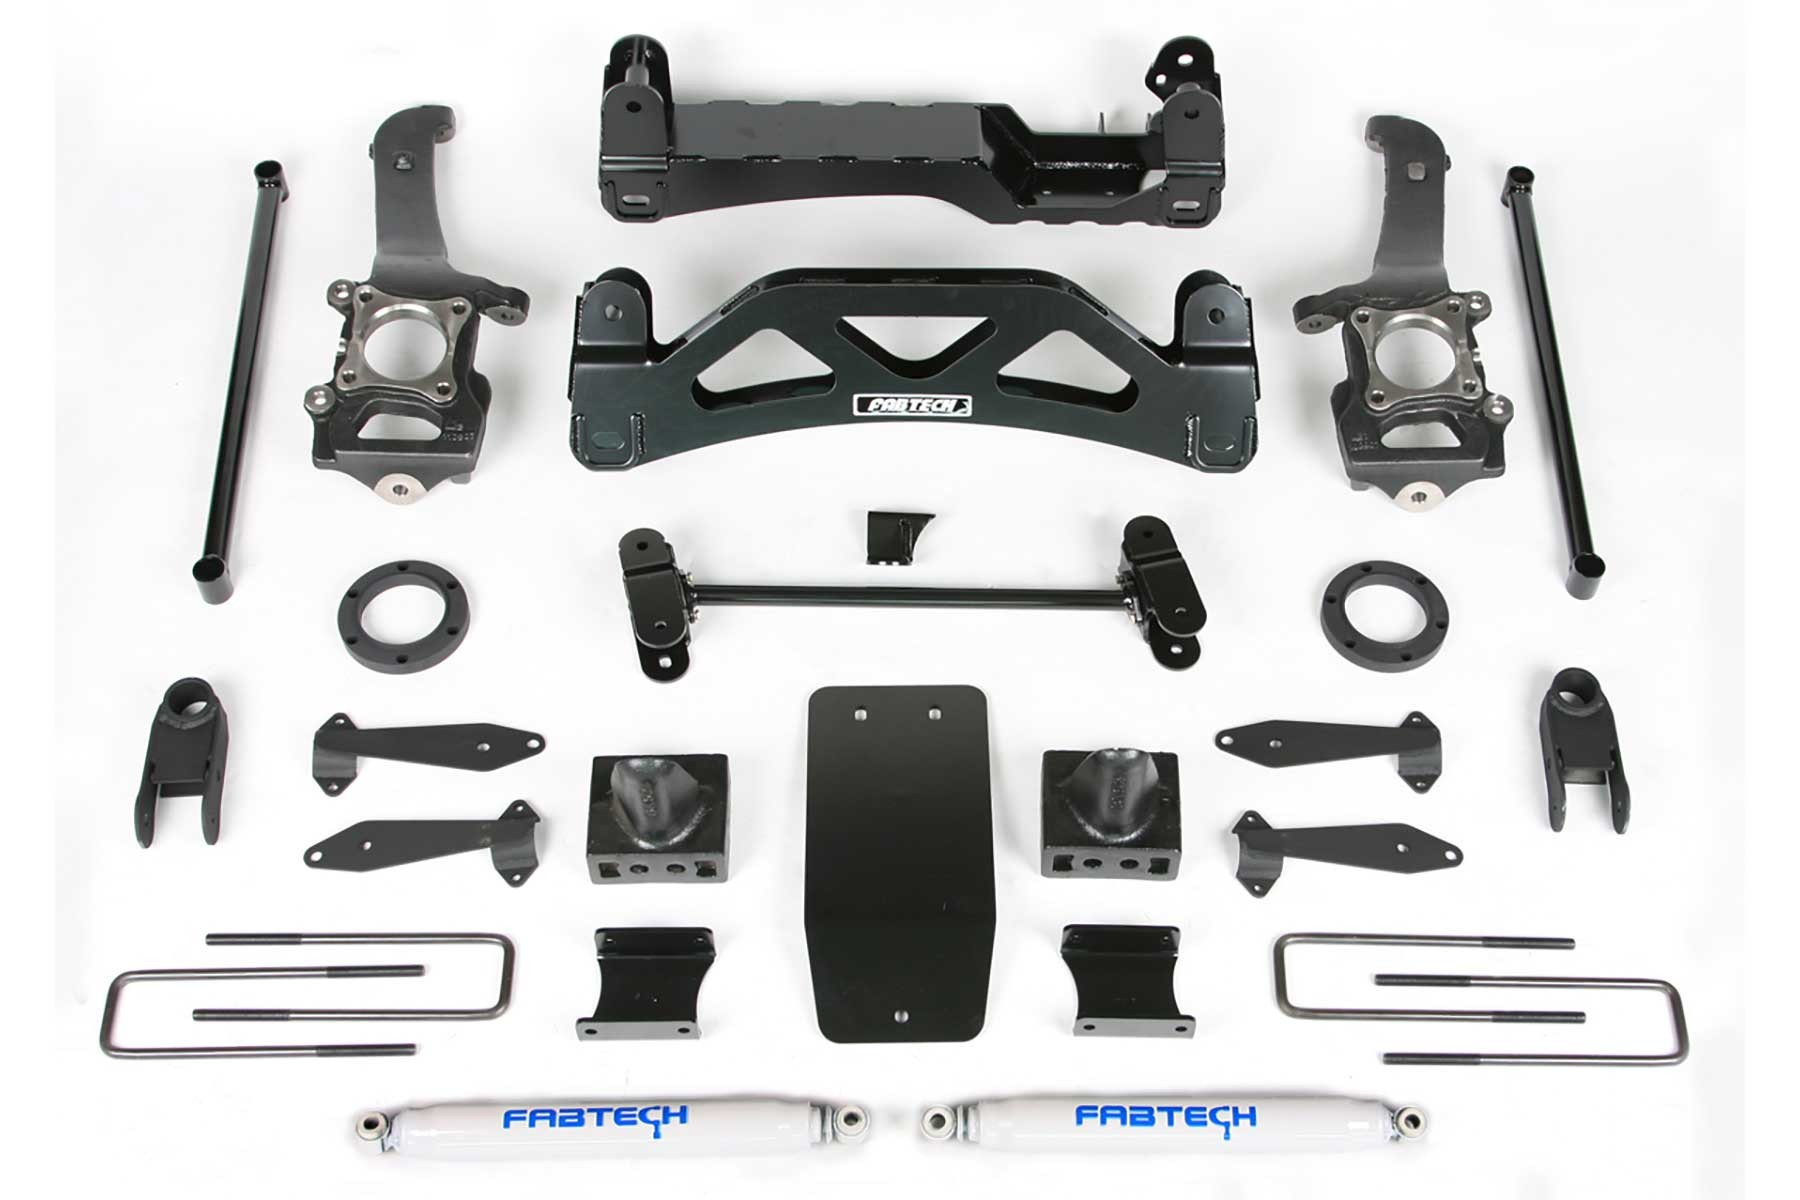 FABTECH 2004-08 FORD FORD F150 4WD- 6″ BASIC SYSTEM W/ FRONT STOCK COILOVER SPACER & REAR SHOCKS